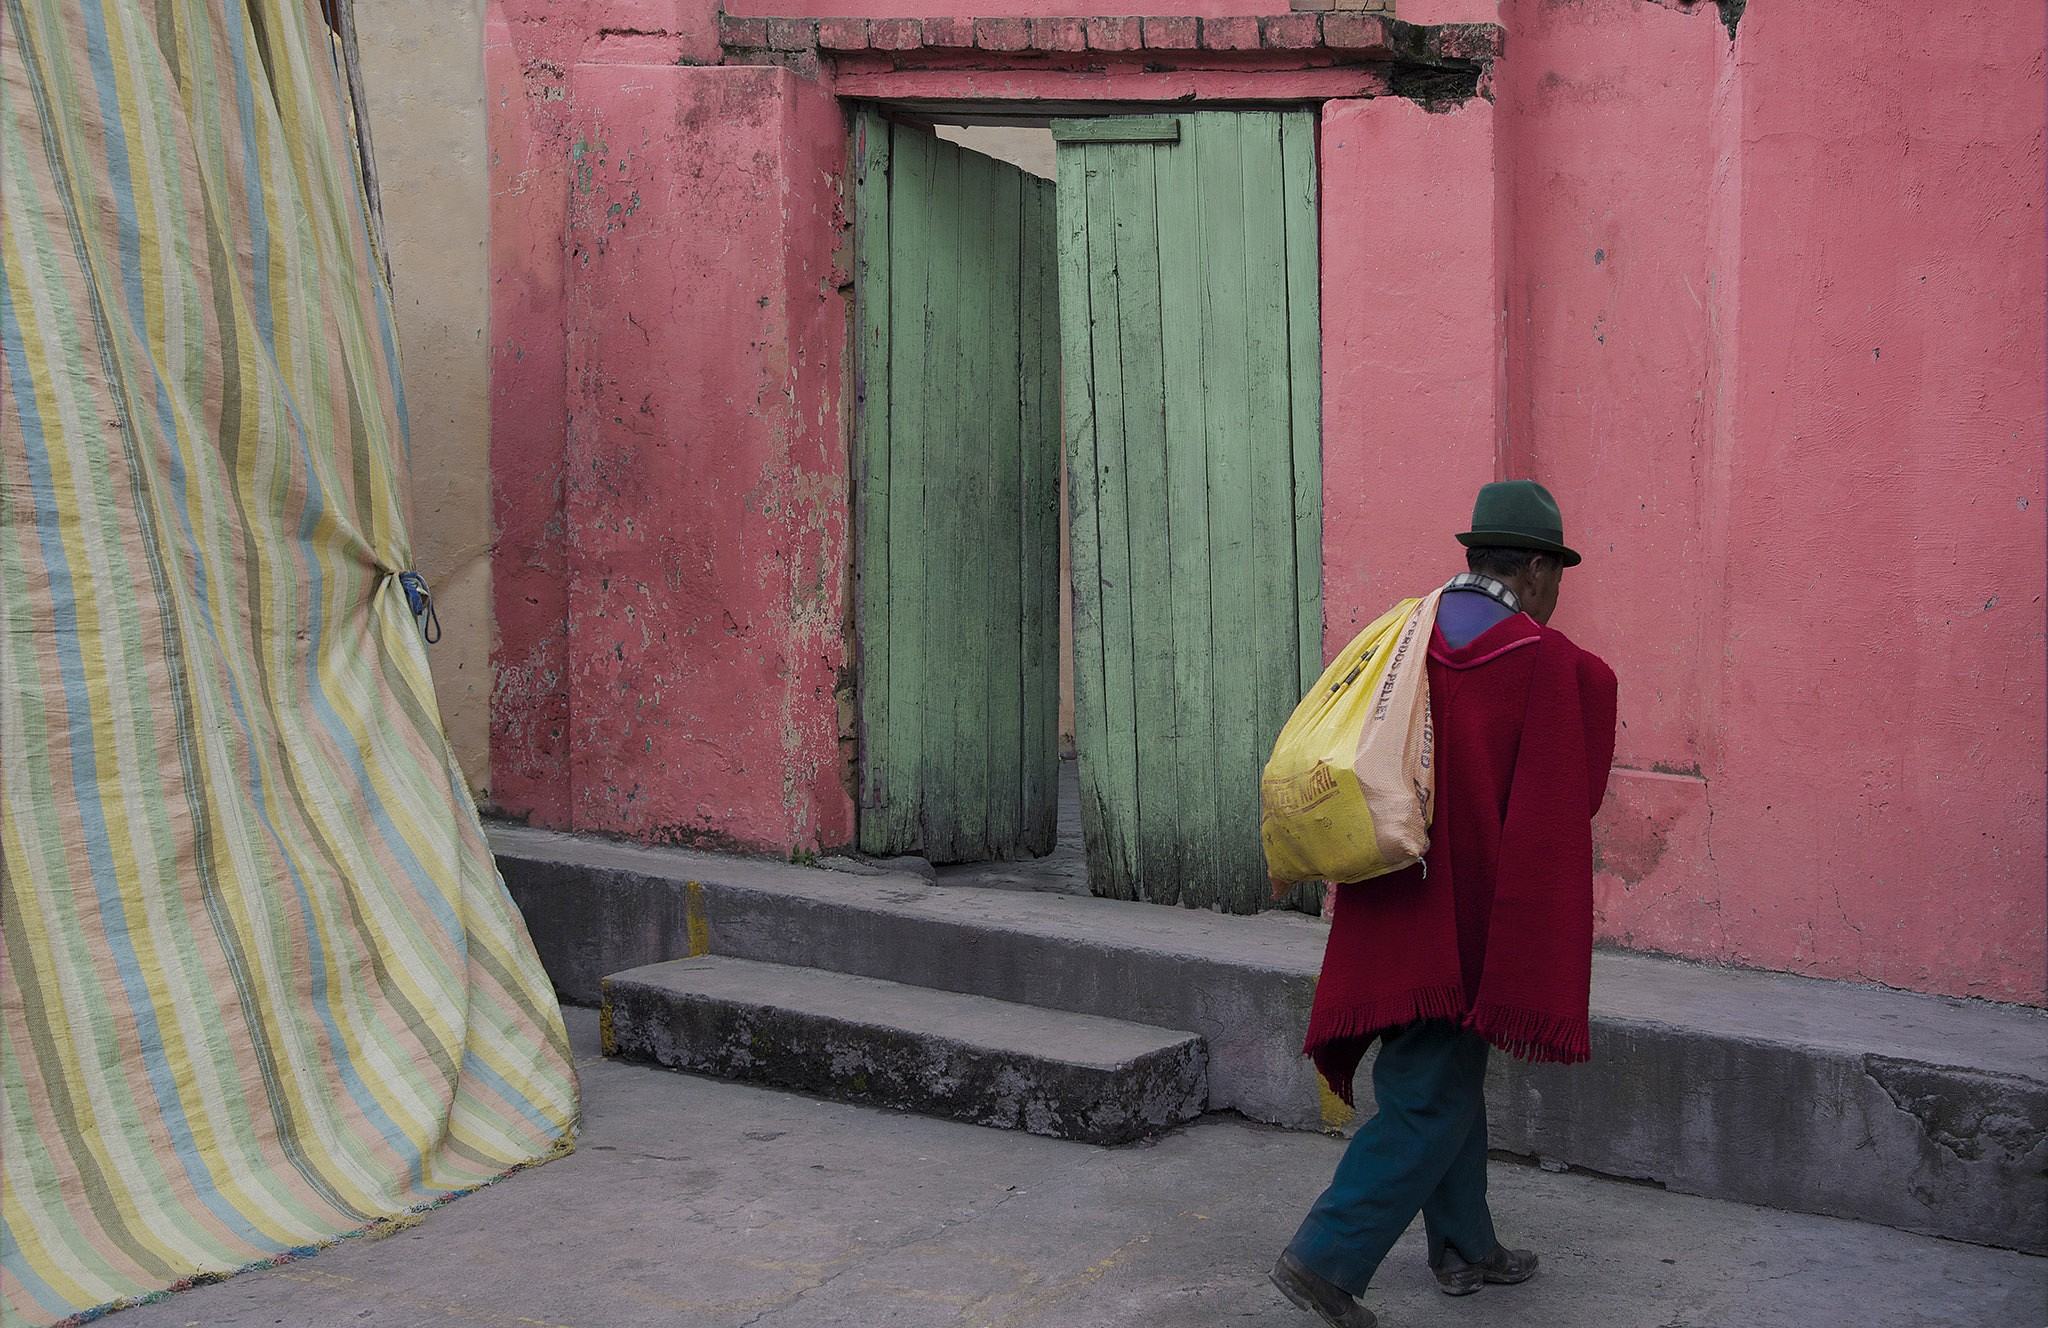 PRESS RELEASE: JEFFREY BECOM: THE PAINTED VILLAGES OF ECUADOR, Nov 23, 2020 - Jan 20, 2021